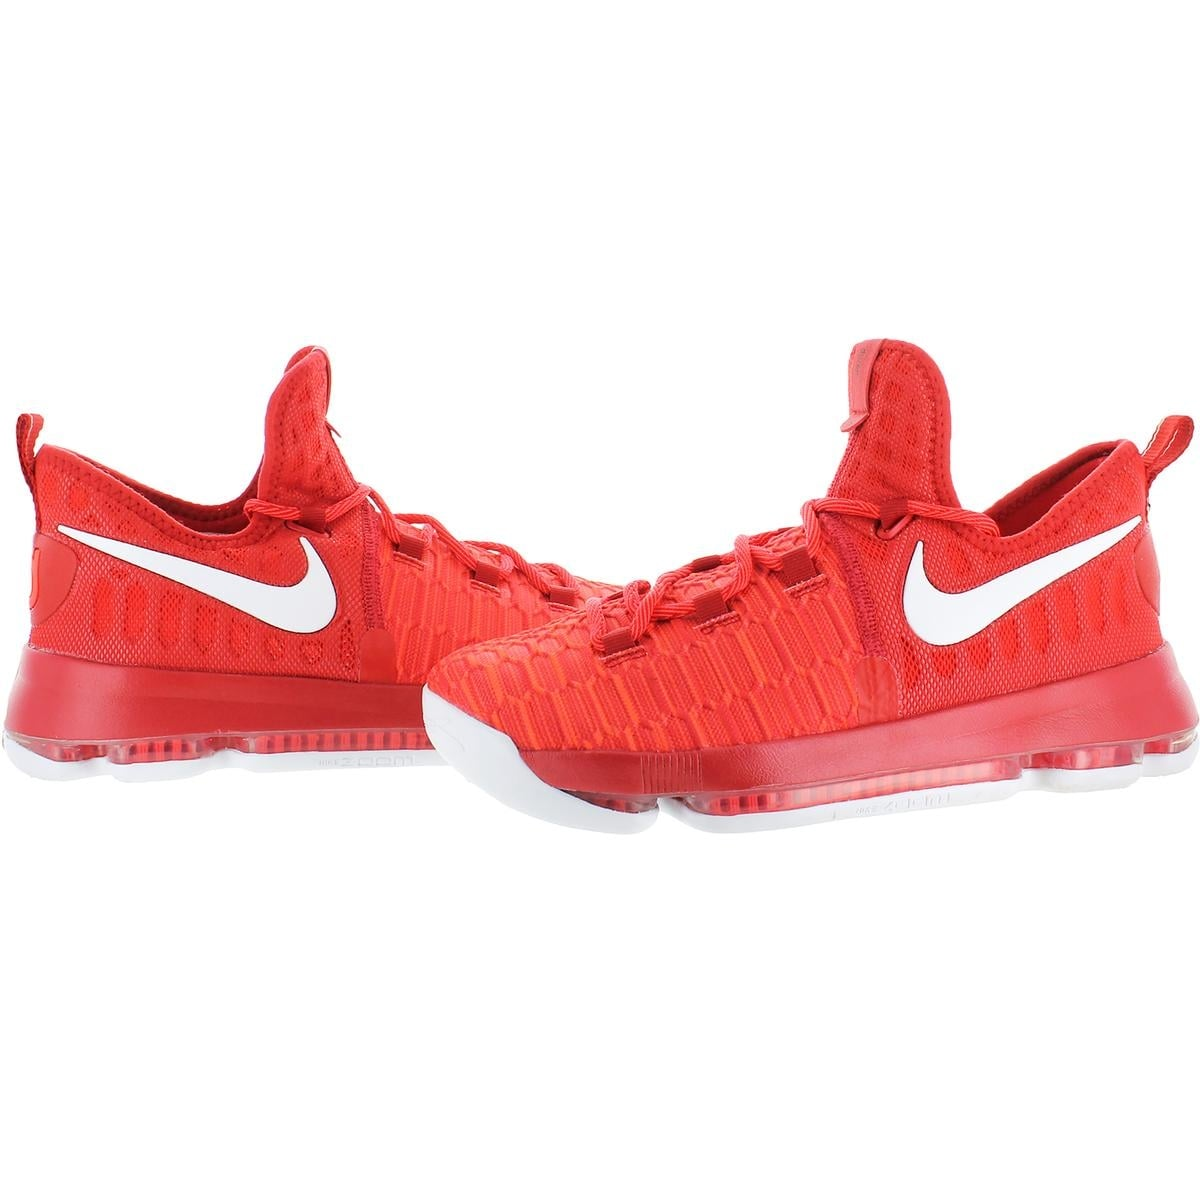 on sale 3f08a 7a55e Shop Nike Boys Zoom KD9 Basketball Shoes Big Kid Textured - Free Shipping  Today - Overstock - 21942304